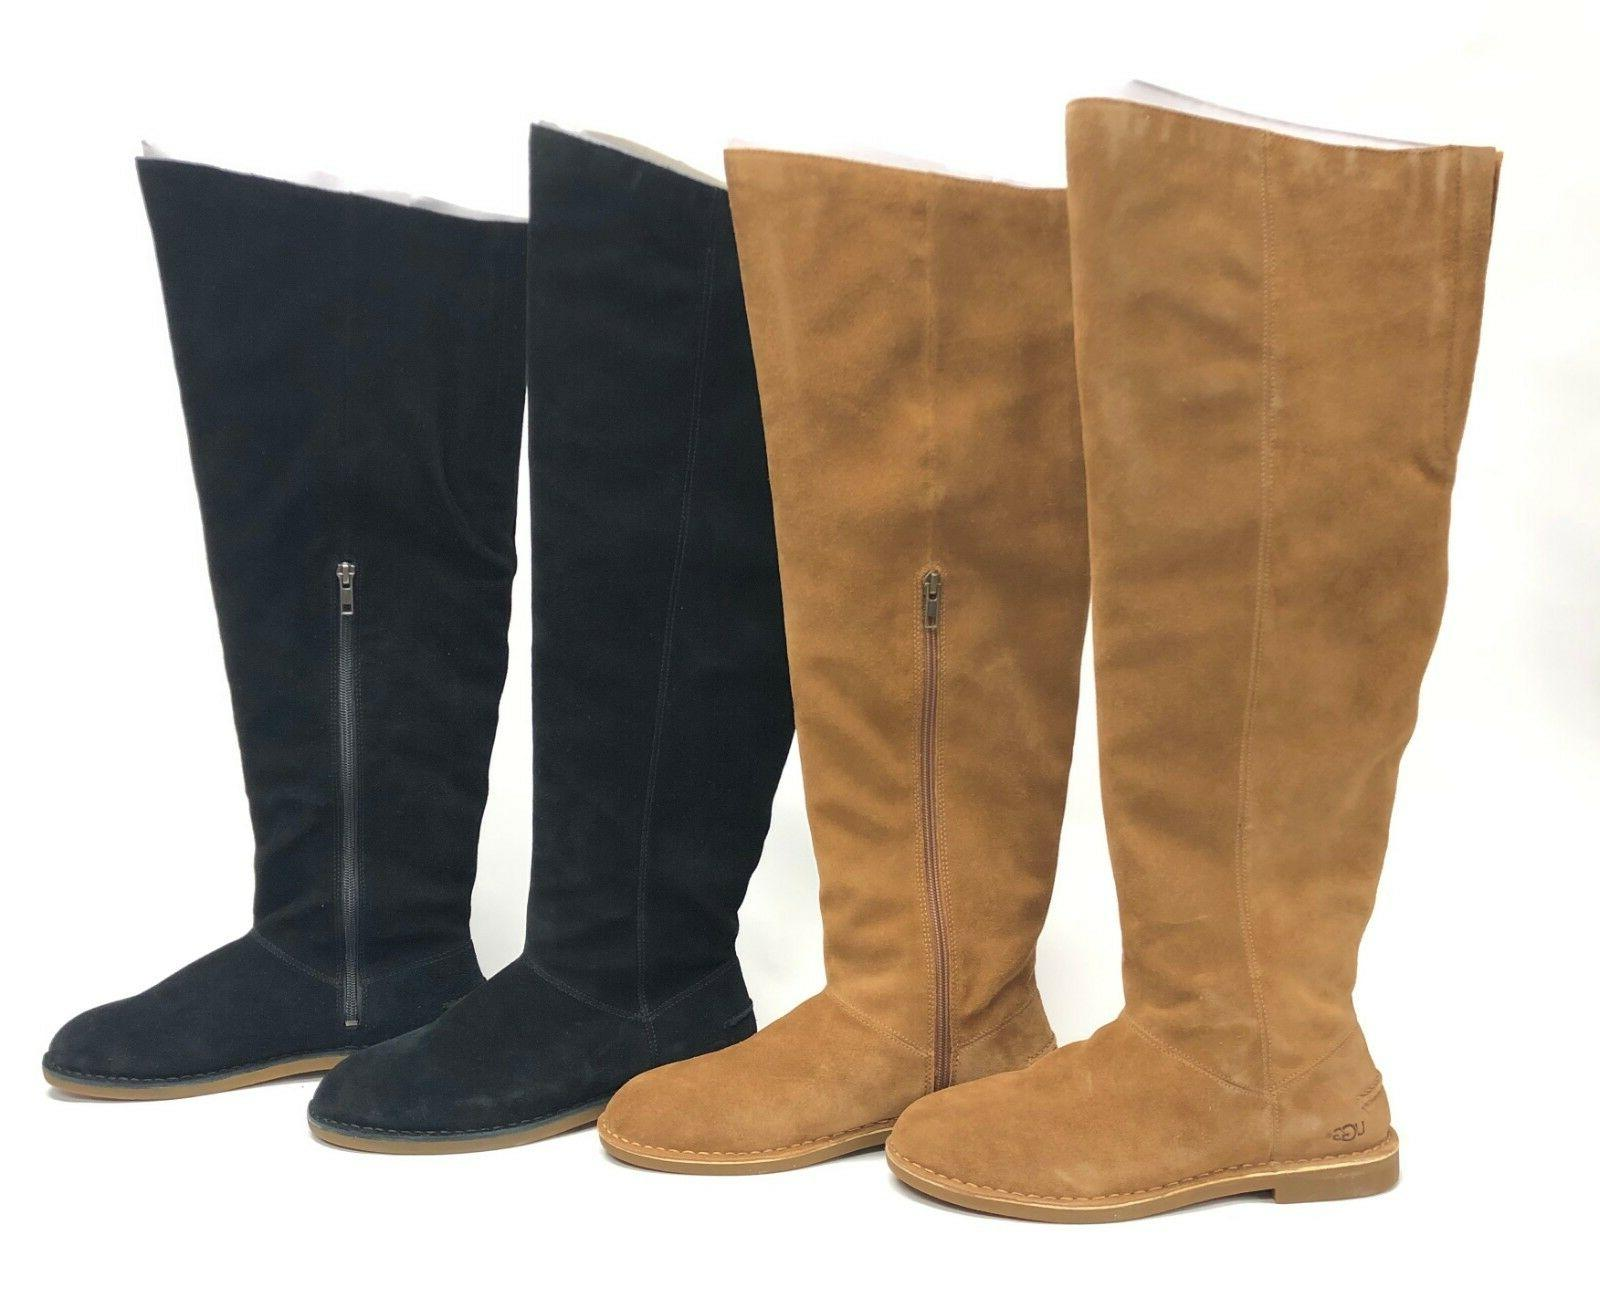 loma over the knee boot black or